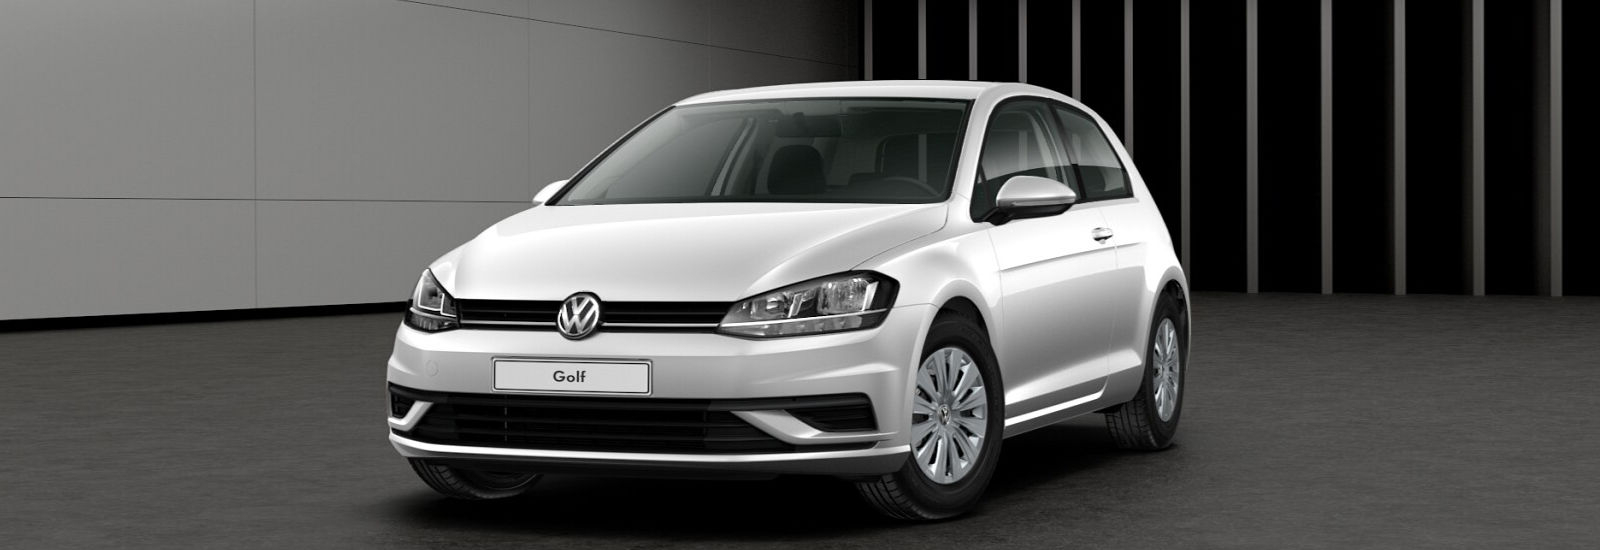 Volkswagen volkswagen type r 2014 : VW Golf hatch Estate GTI GTD R colours guide prices | carwow